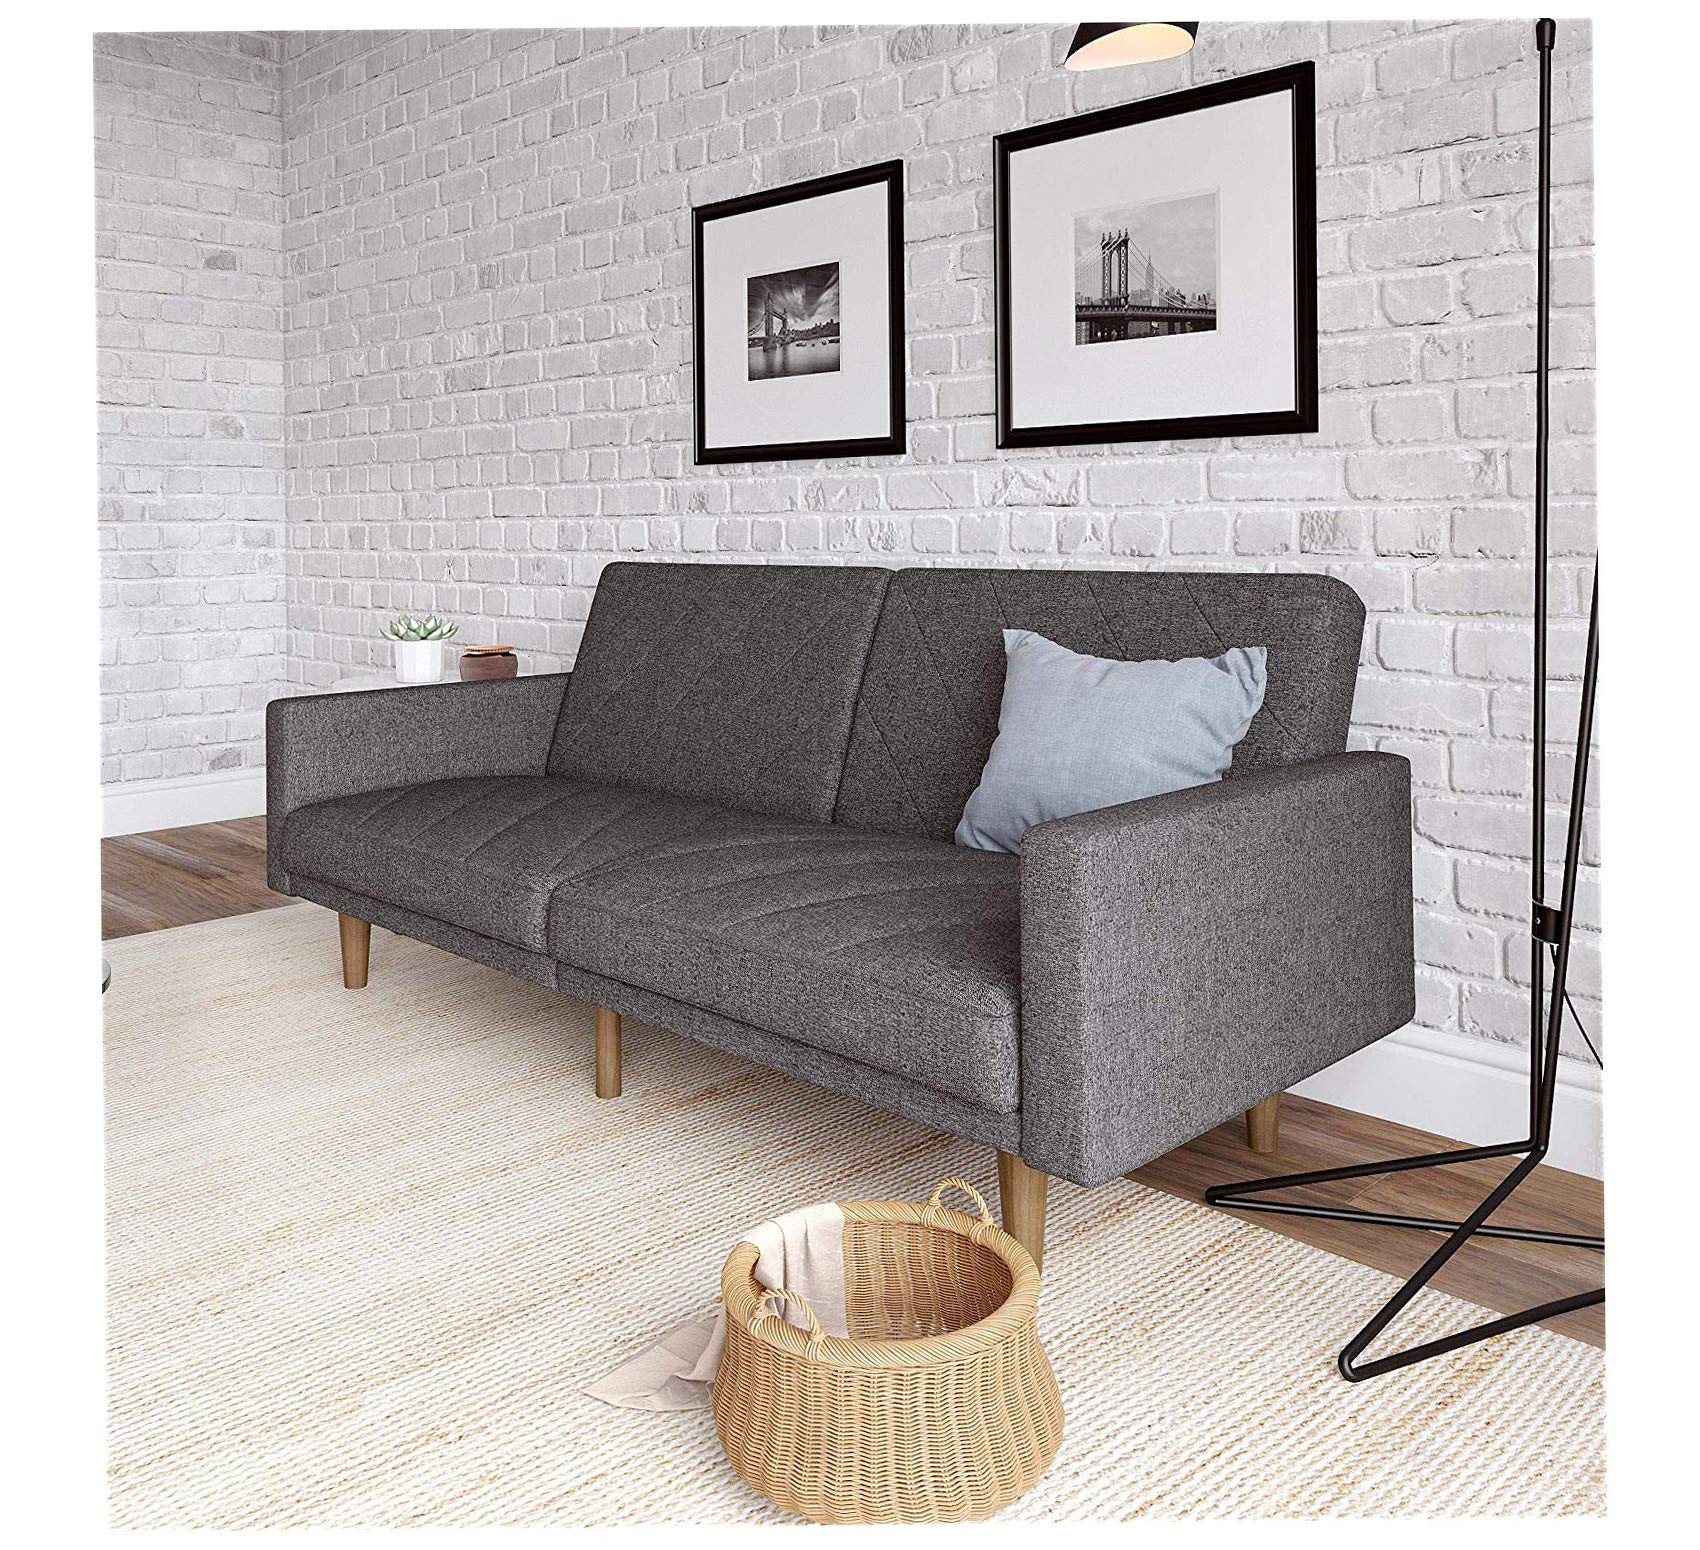 Home Convertible Futon Couch Bed with Linen Upholstery and Wood Legs - Grey Office Décor Studio Living Heavy Duty Commercial Bar Café Restaurant by Wood & Style